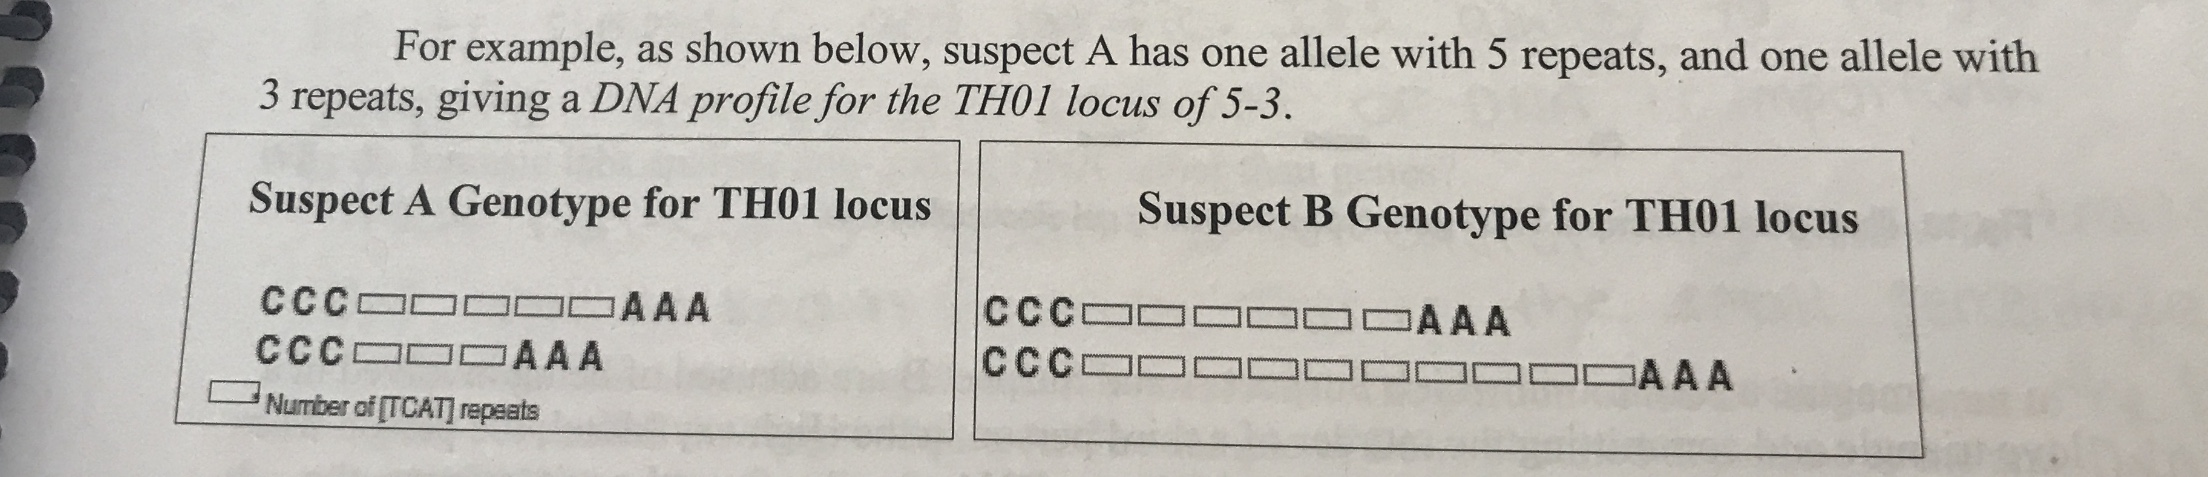 For example, as shown below, suspect A has one allele with 5 repeats, and one allele with 3 repeats, giving a DNA profile for the TH01 locus of 5-3. Suspect A Genotype for TH01 locus Suspect B Genotype for TH01 locus CCC AAA CCC CCC AAA CCC AAA AAA Number of [TCAT] repaats